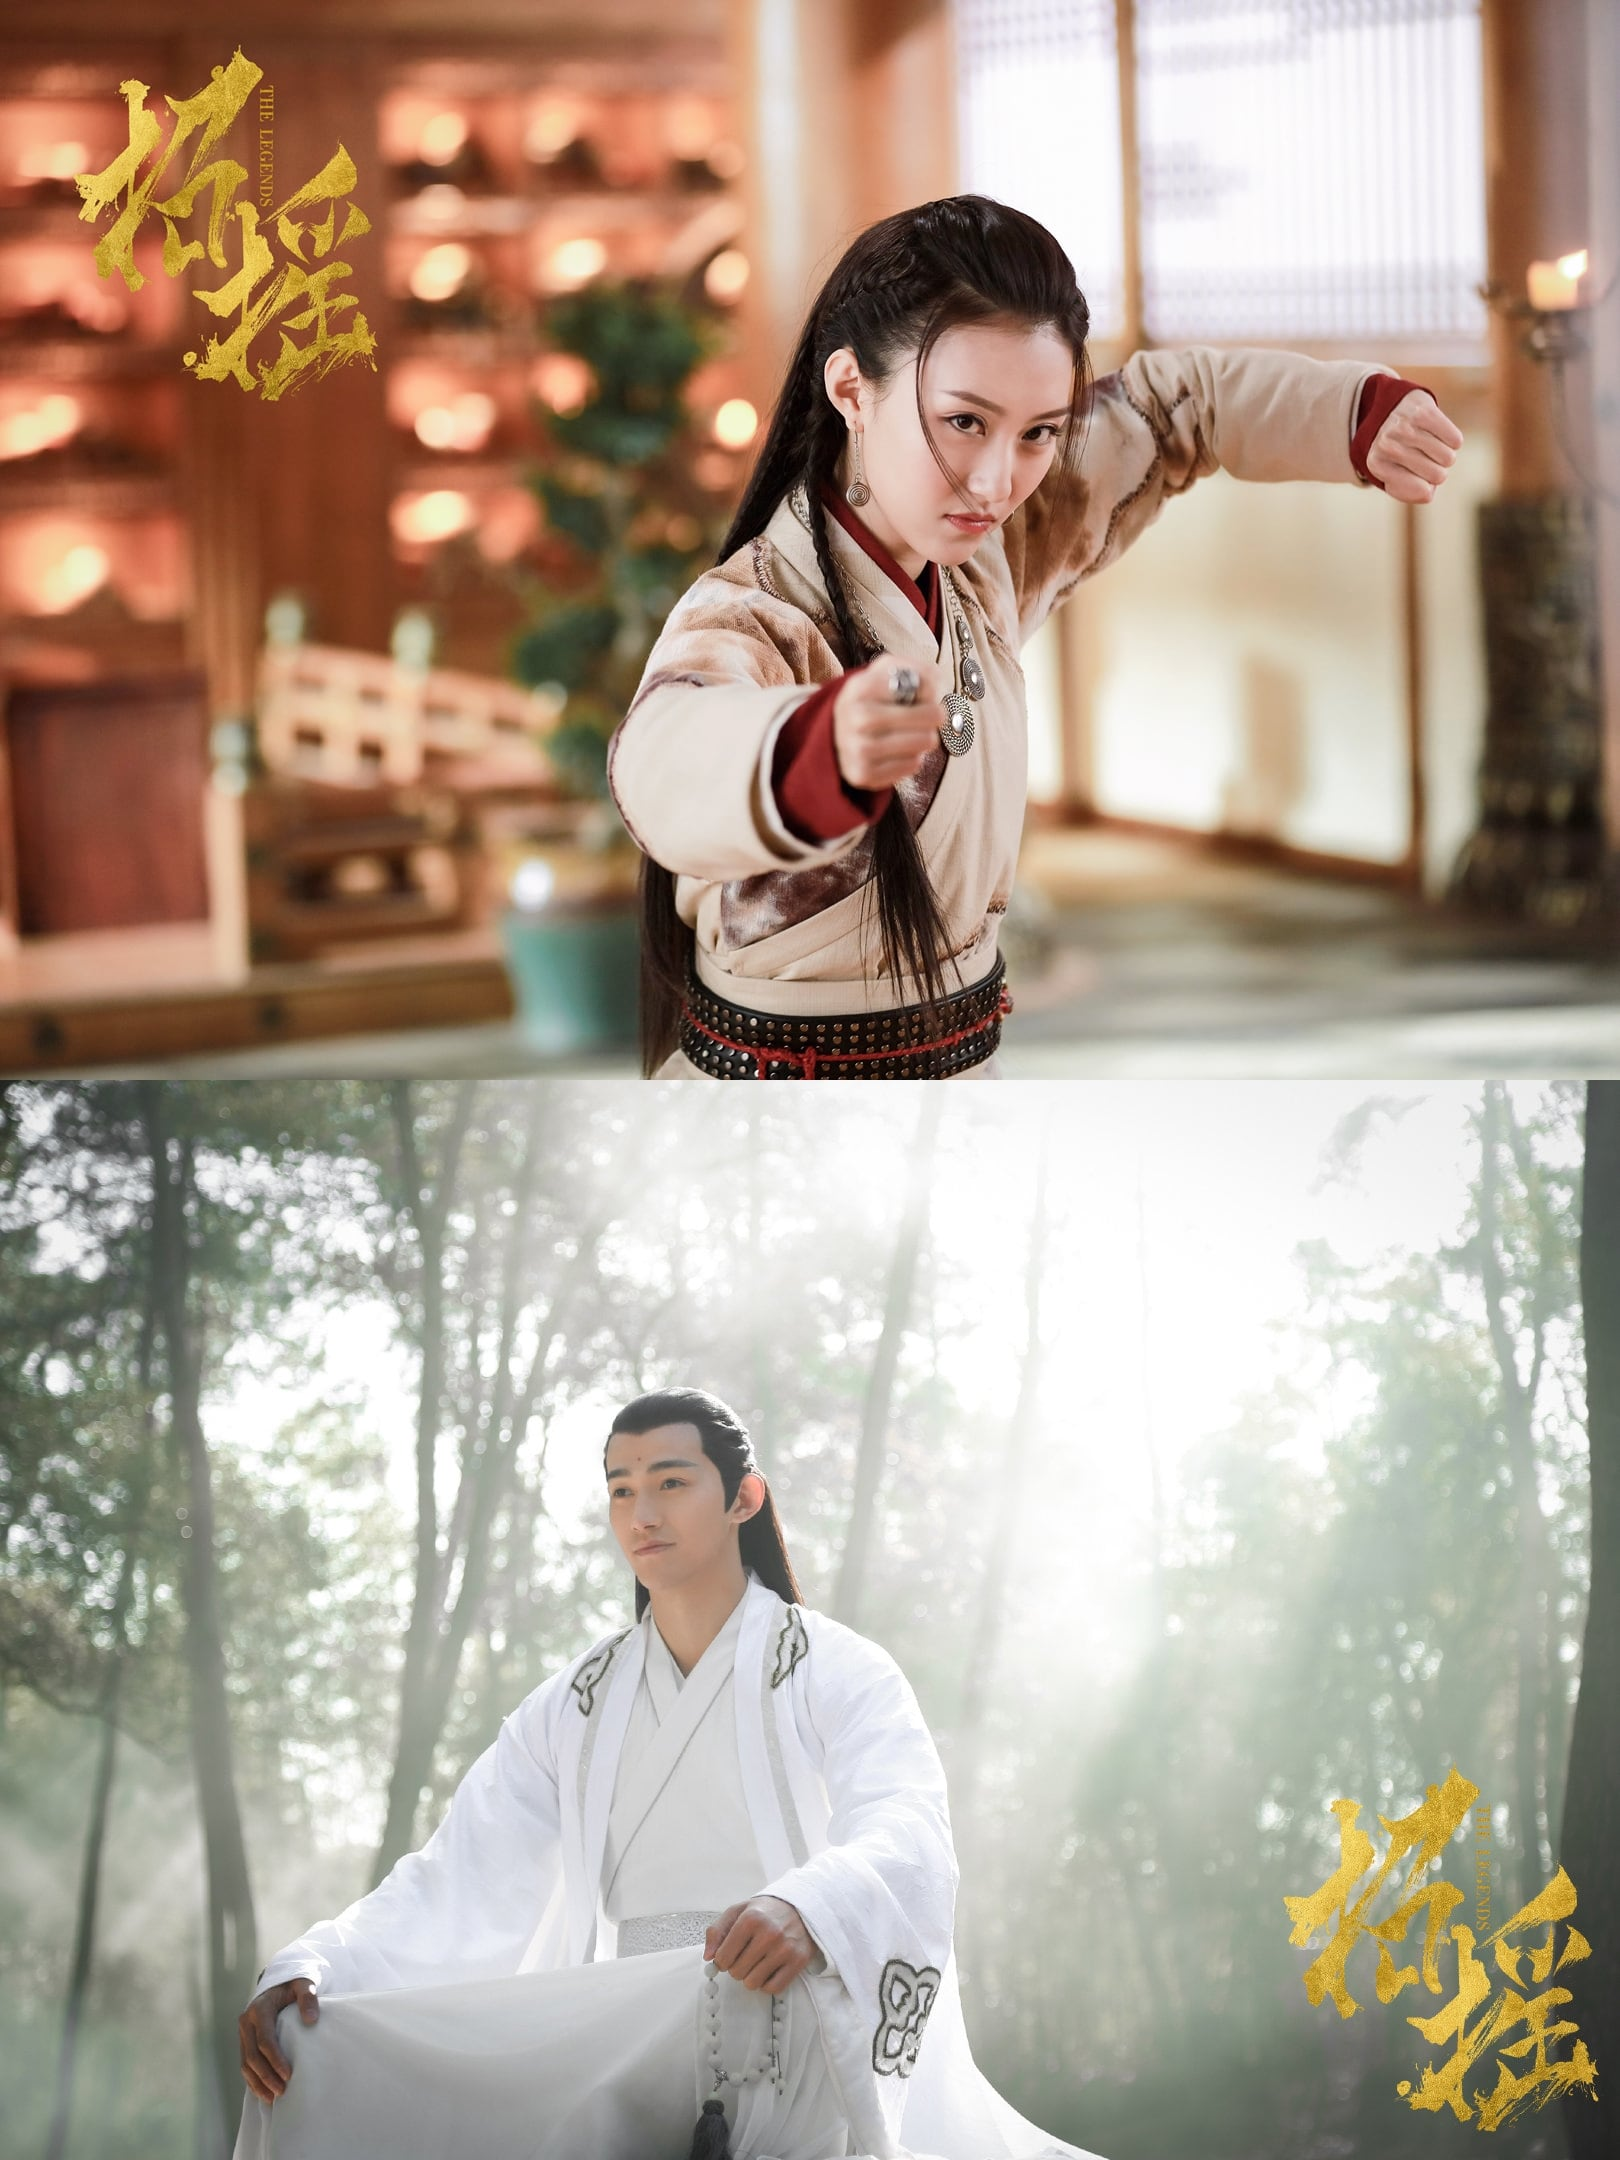 """A Heroine's Vow Of Revenge: 4 Reasons To Watch C-Drama """"The Legends"""